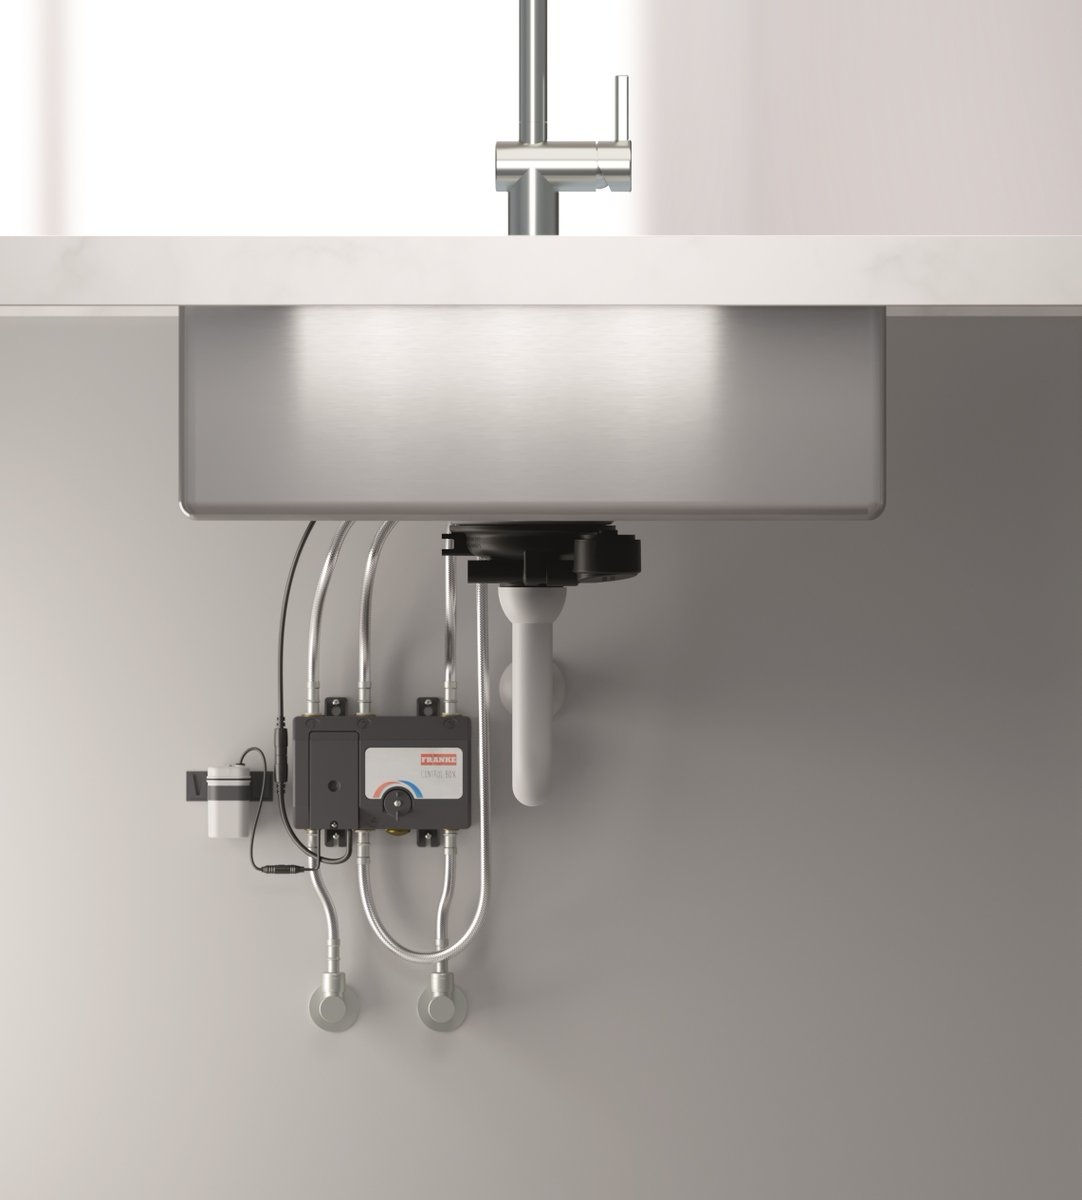 Our Atlas Neo Sensor touch free tap is fast and easy to install with a small control box and battery case which can simply be screwed onto the cabinet. Perfect a new kitchen or to change or upgrade to a touch-free option. franke.com/content/corpor… #touchfree #plumbing